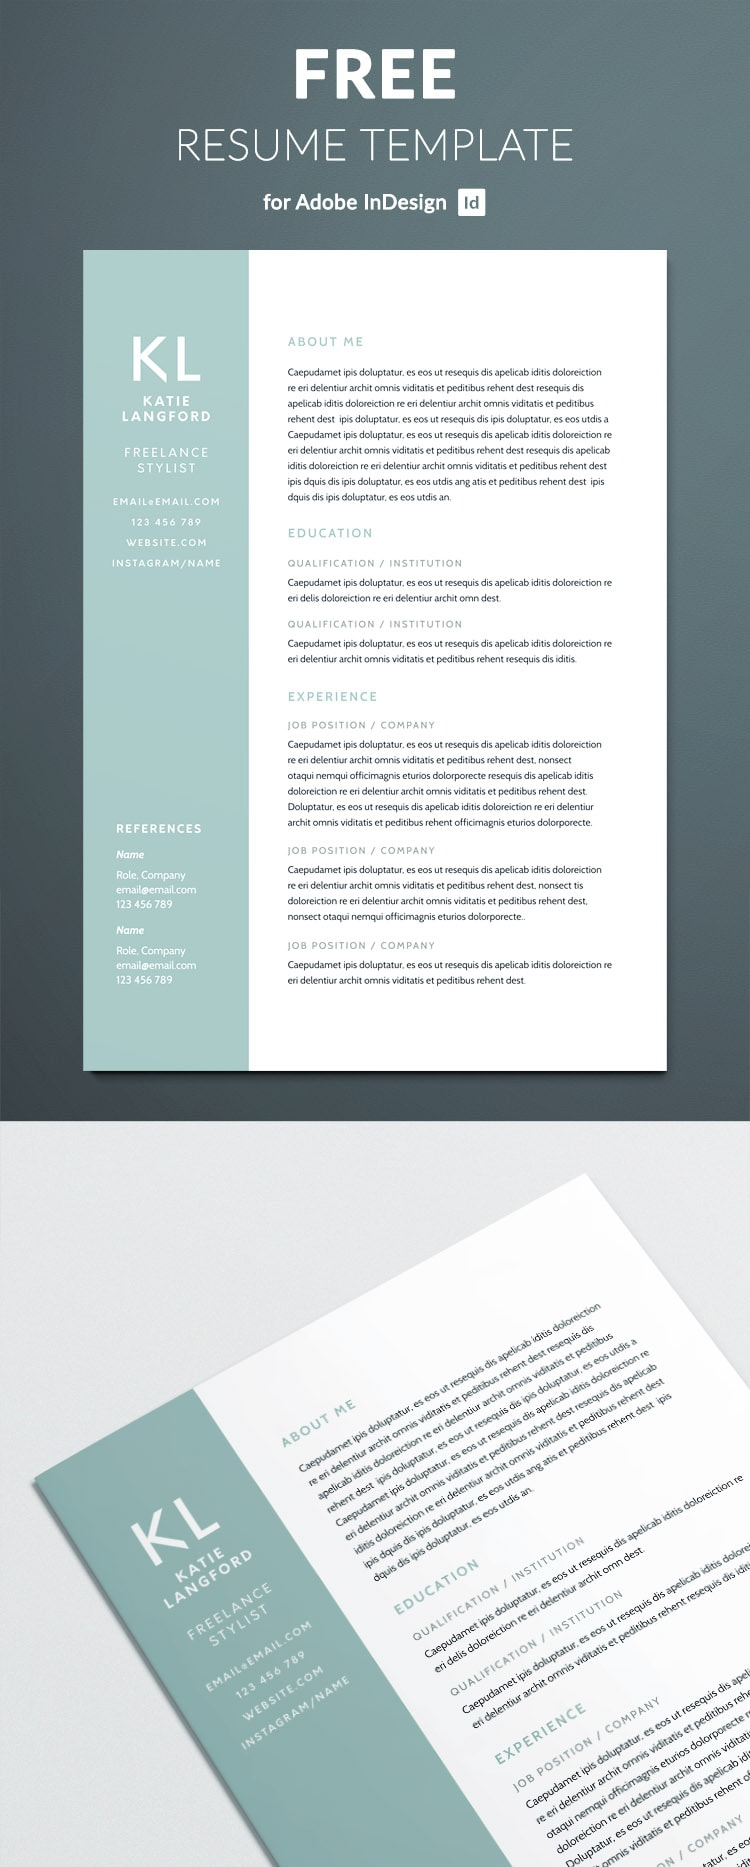 Modern resume template for indesign free download free modern resume template for indesign free indesign templates maxwellsz